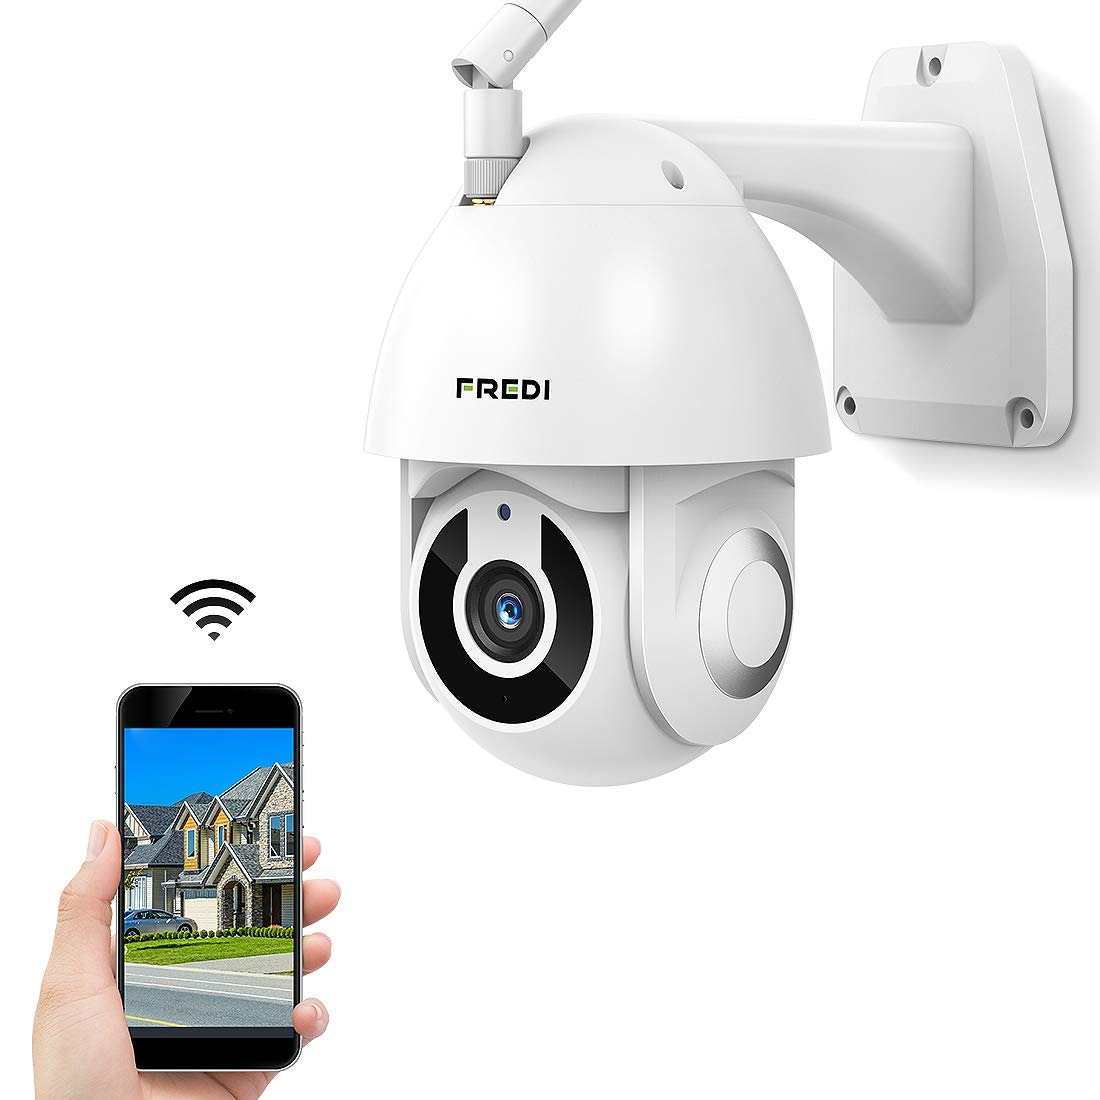 Outdoor Security Camera, FREDI 1080P HD Wireless WiFi IP Surveillance Camera with Night Vision, Two-Way Audio, Motion Detection, IP66 Waterproof, Pan/Tilt/Zoom, Work with iOS Android PC by FREDI